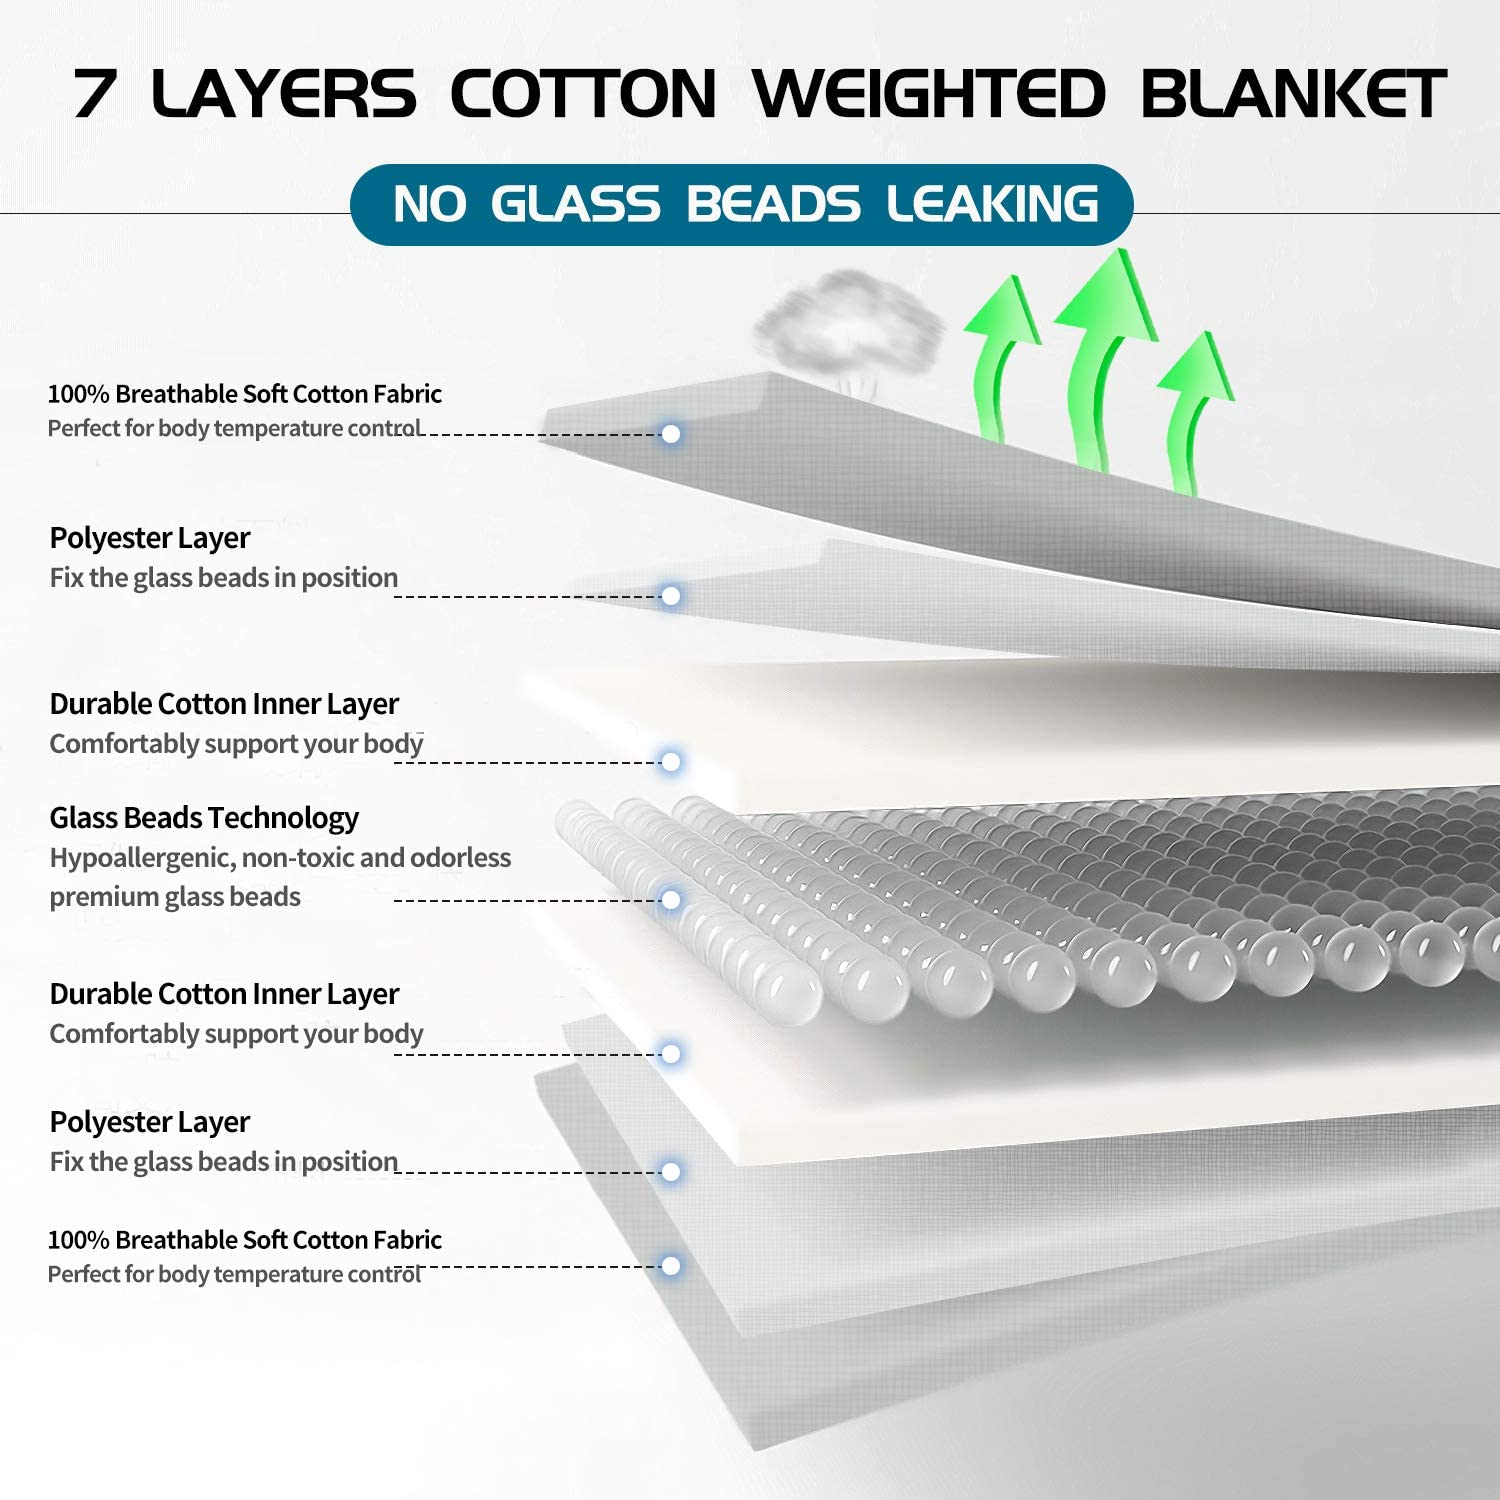 Fight Anxiety And Insomnia Napping And Sofa Lounging Children 135x100CM,3KG Leefun 100/% Cotton 7 Layer Weighted Blanket For Kids Single Size